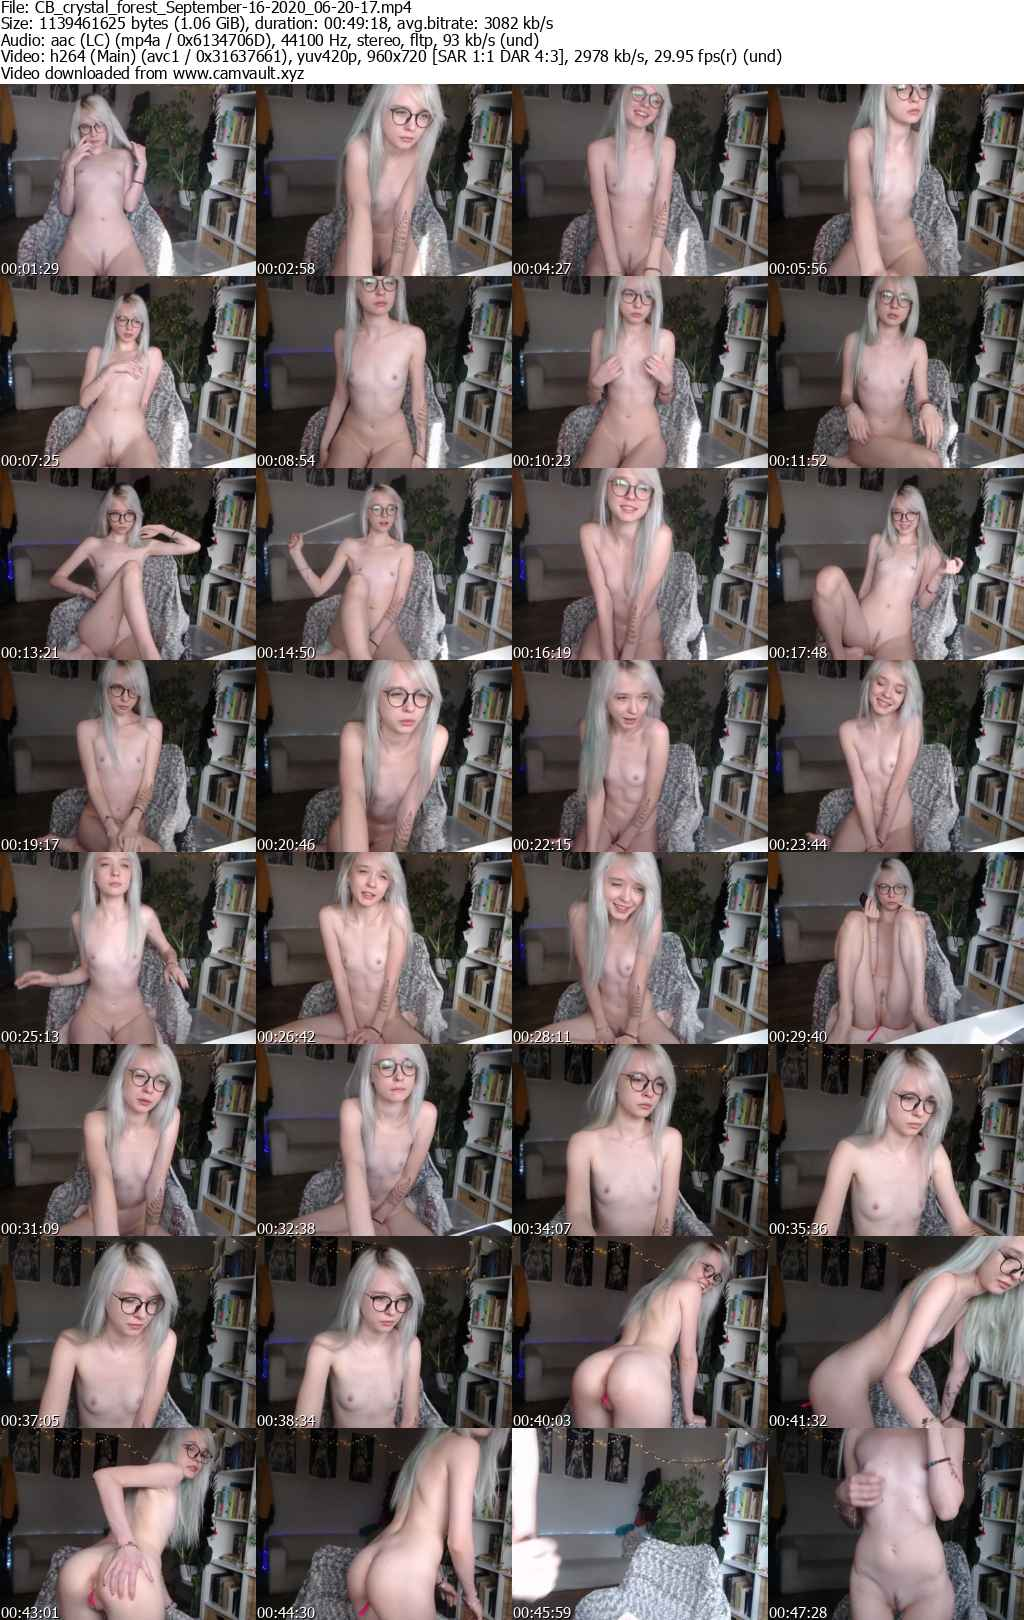 Video preview for model crystal_forest